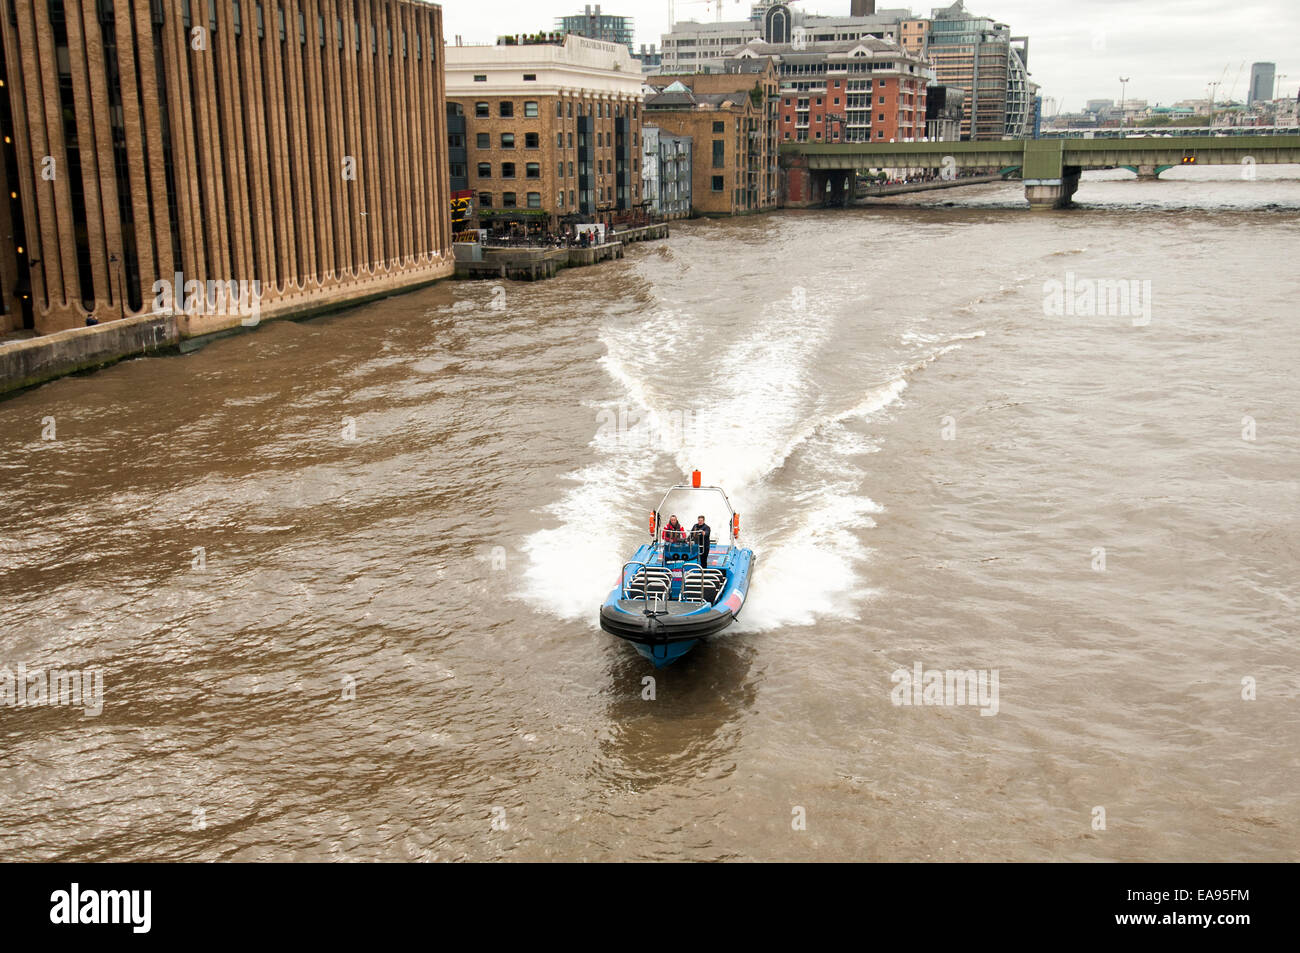 Blue Lightening RIB giving power boat rides to tourists on the River Thames in London - Stock Image